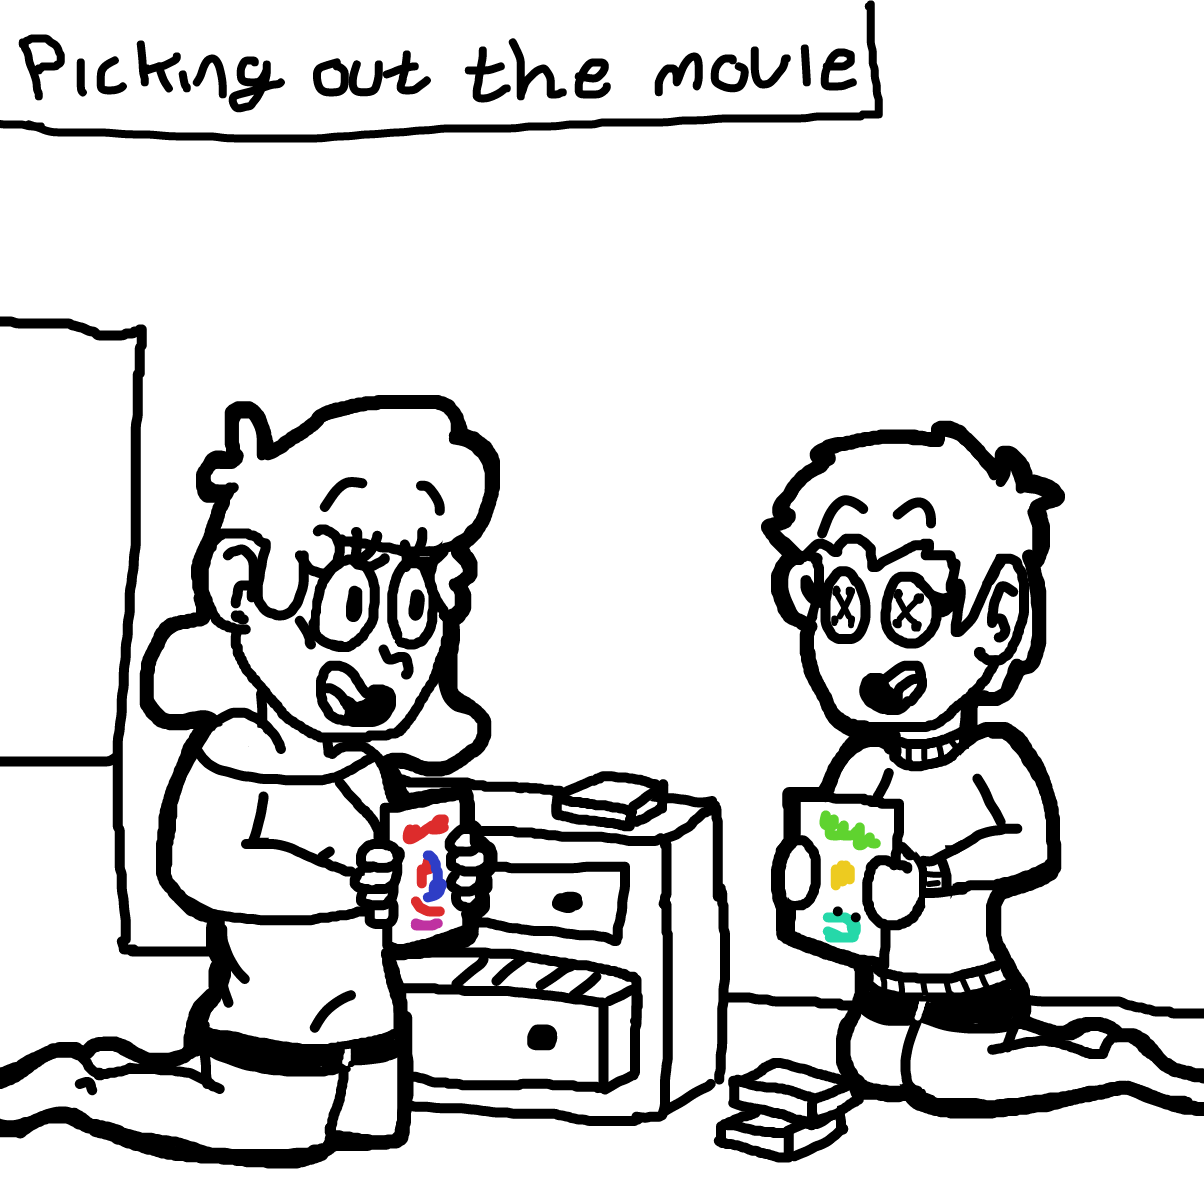 Drawing in Watching Movies with BAE by CherryFlavored